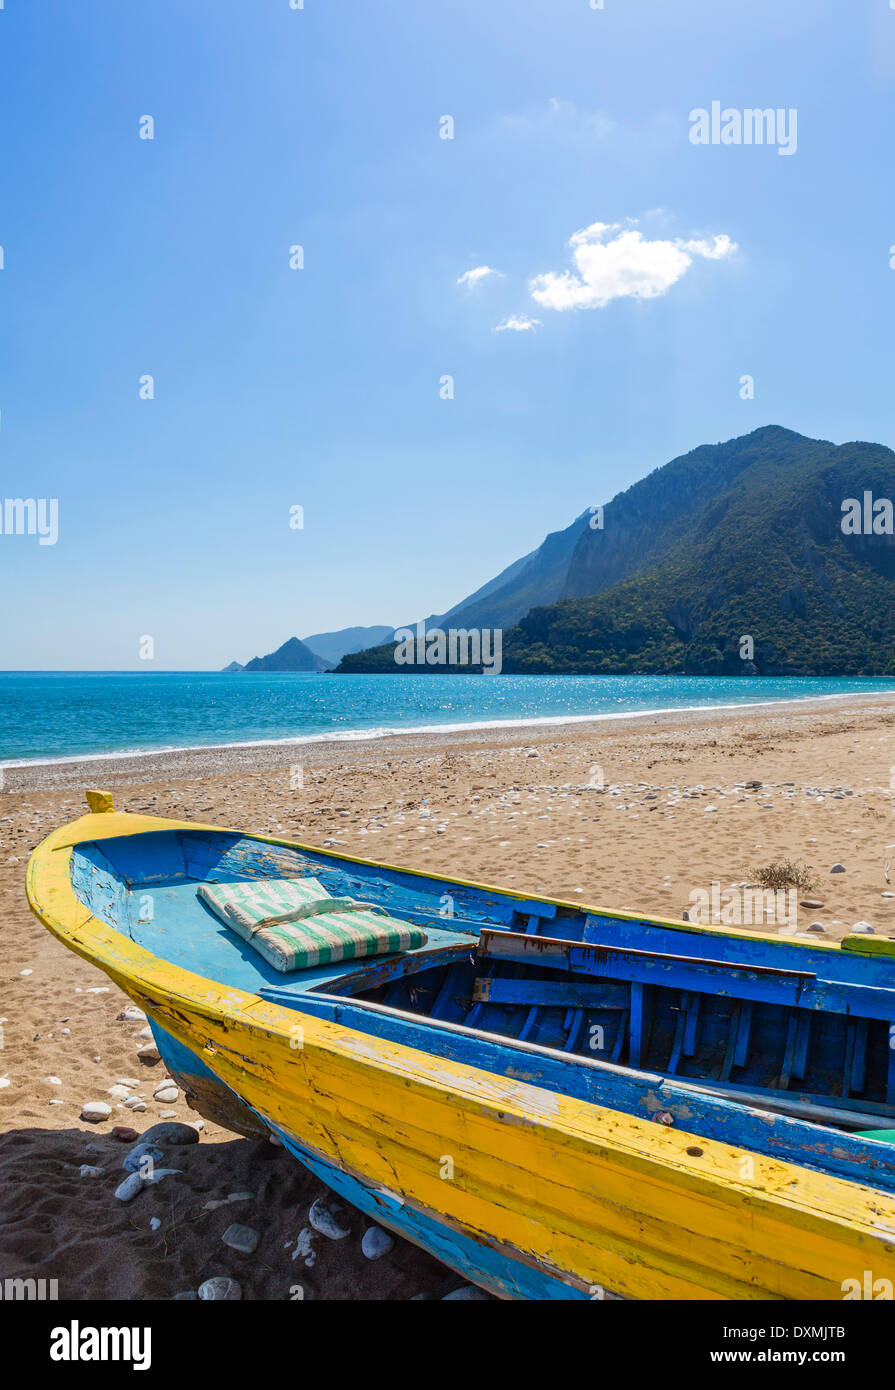 Beach in the quiet resort of Cirali looking towards the ruins at Olympos, Kemer District, Antalya Province, Turkey - Stock Image